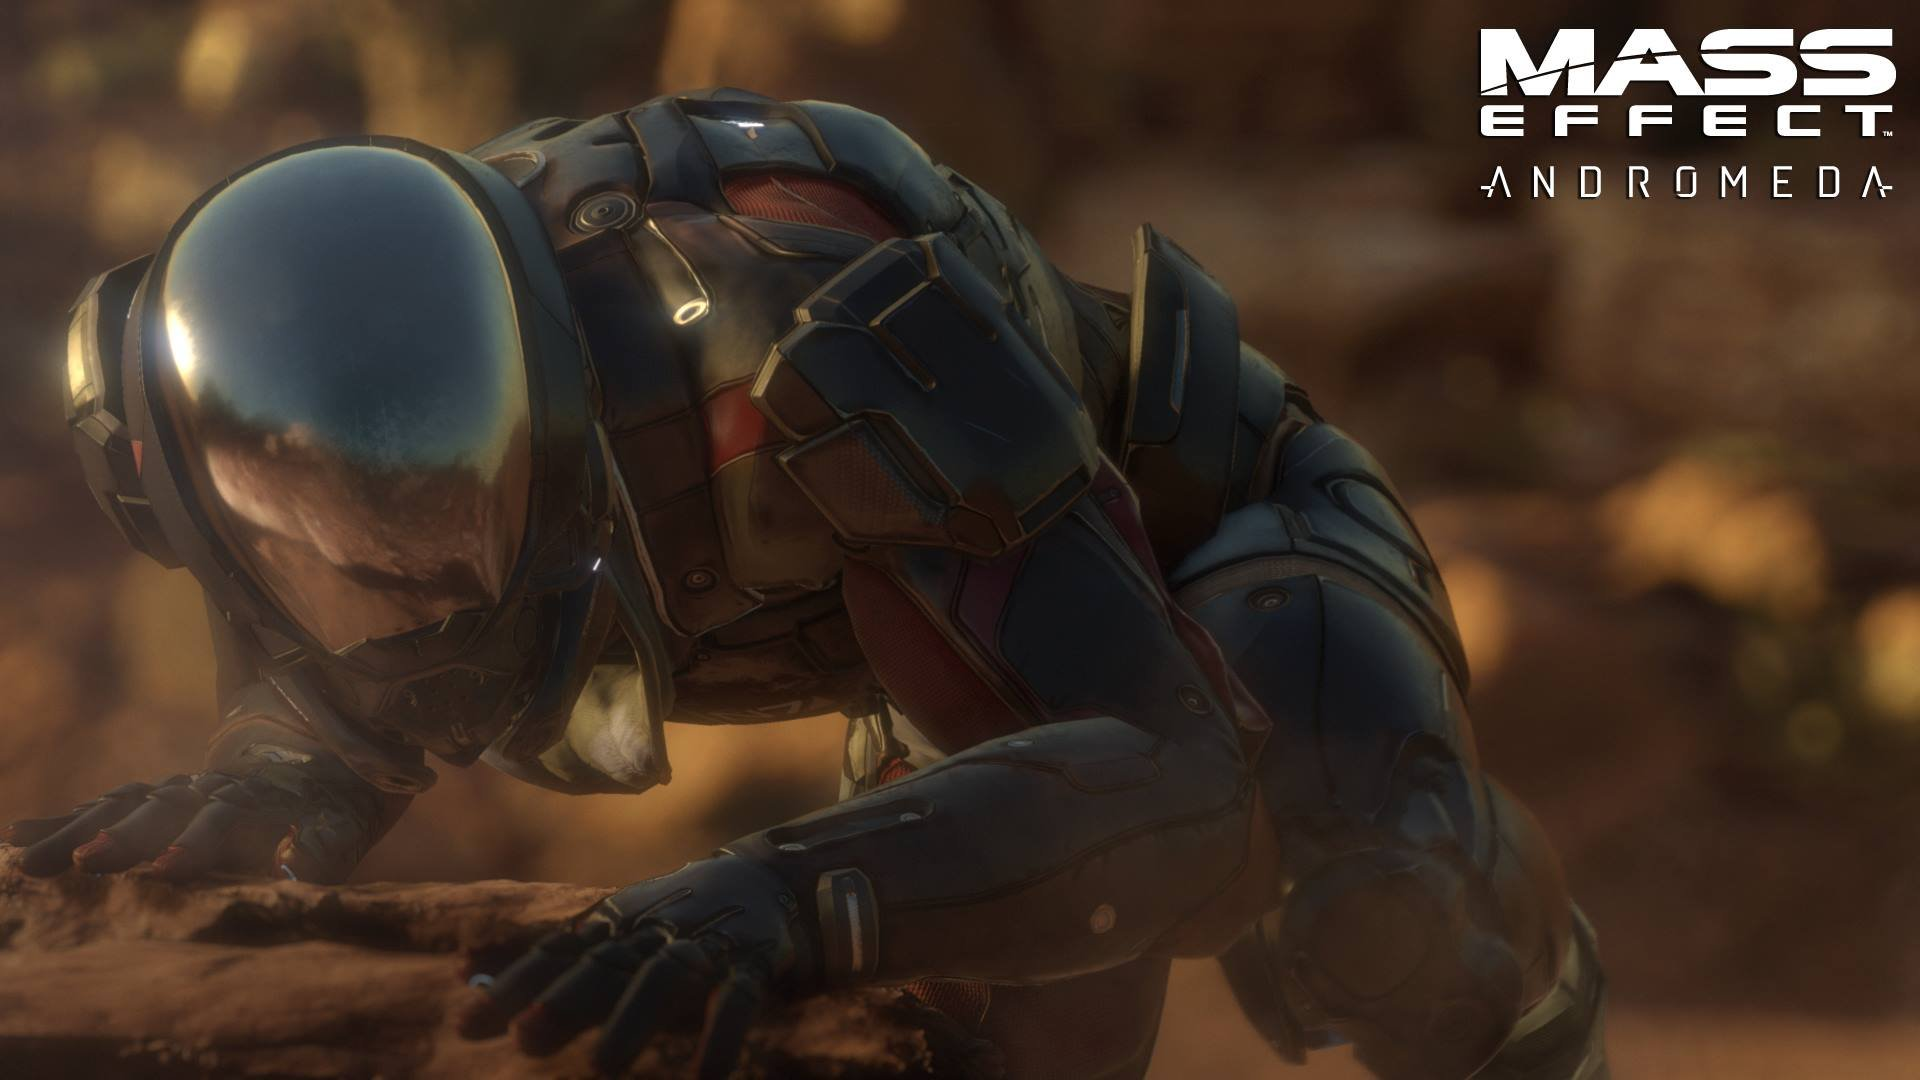 Mass Effect Andromeda 1920x1080: Mass Effect: Andromeda Computer Wallpapers, Desktop